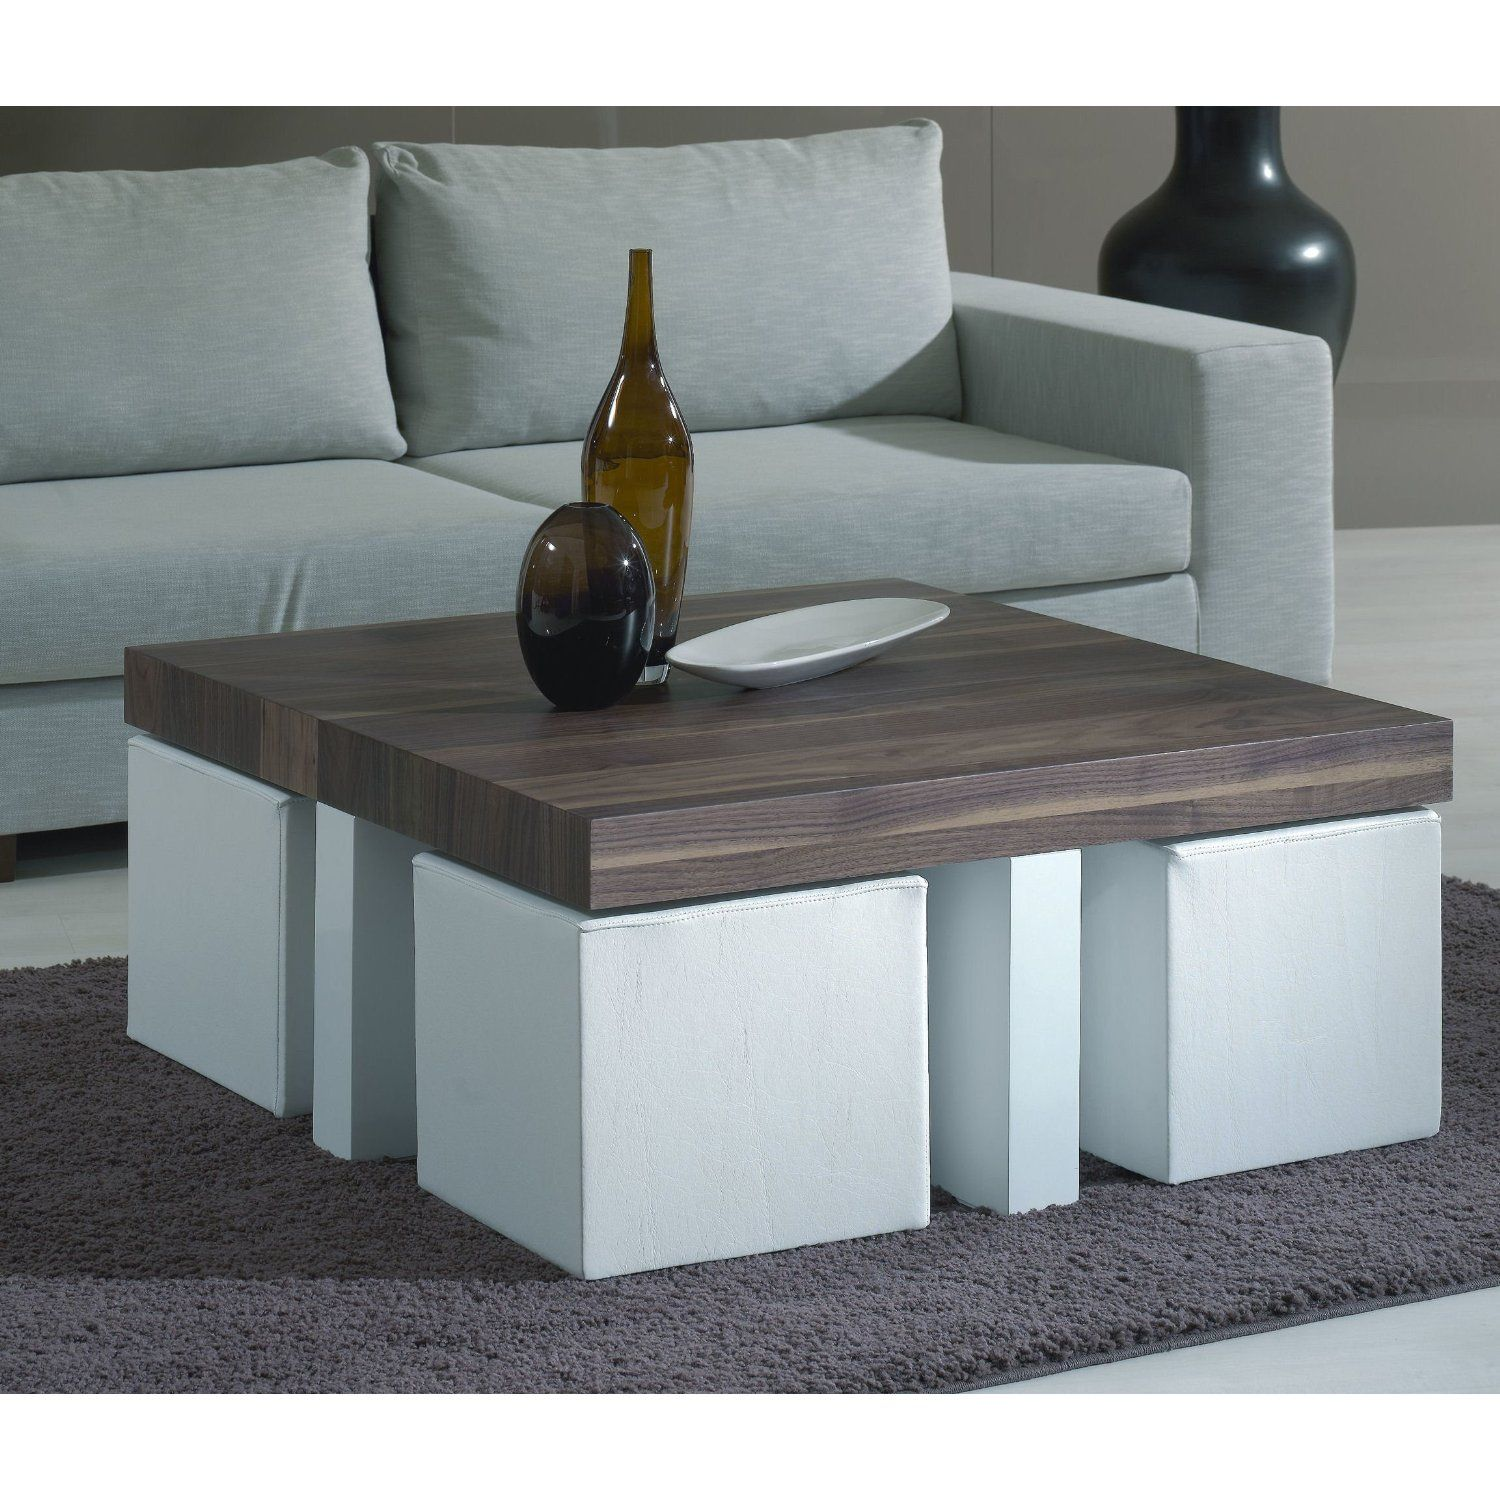 Coffee Table With Seating Underneath Coffee Table With Stools Love This Idea For Stools